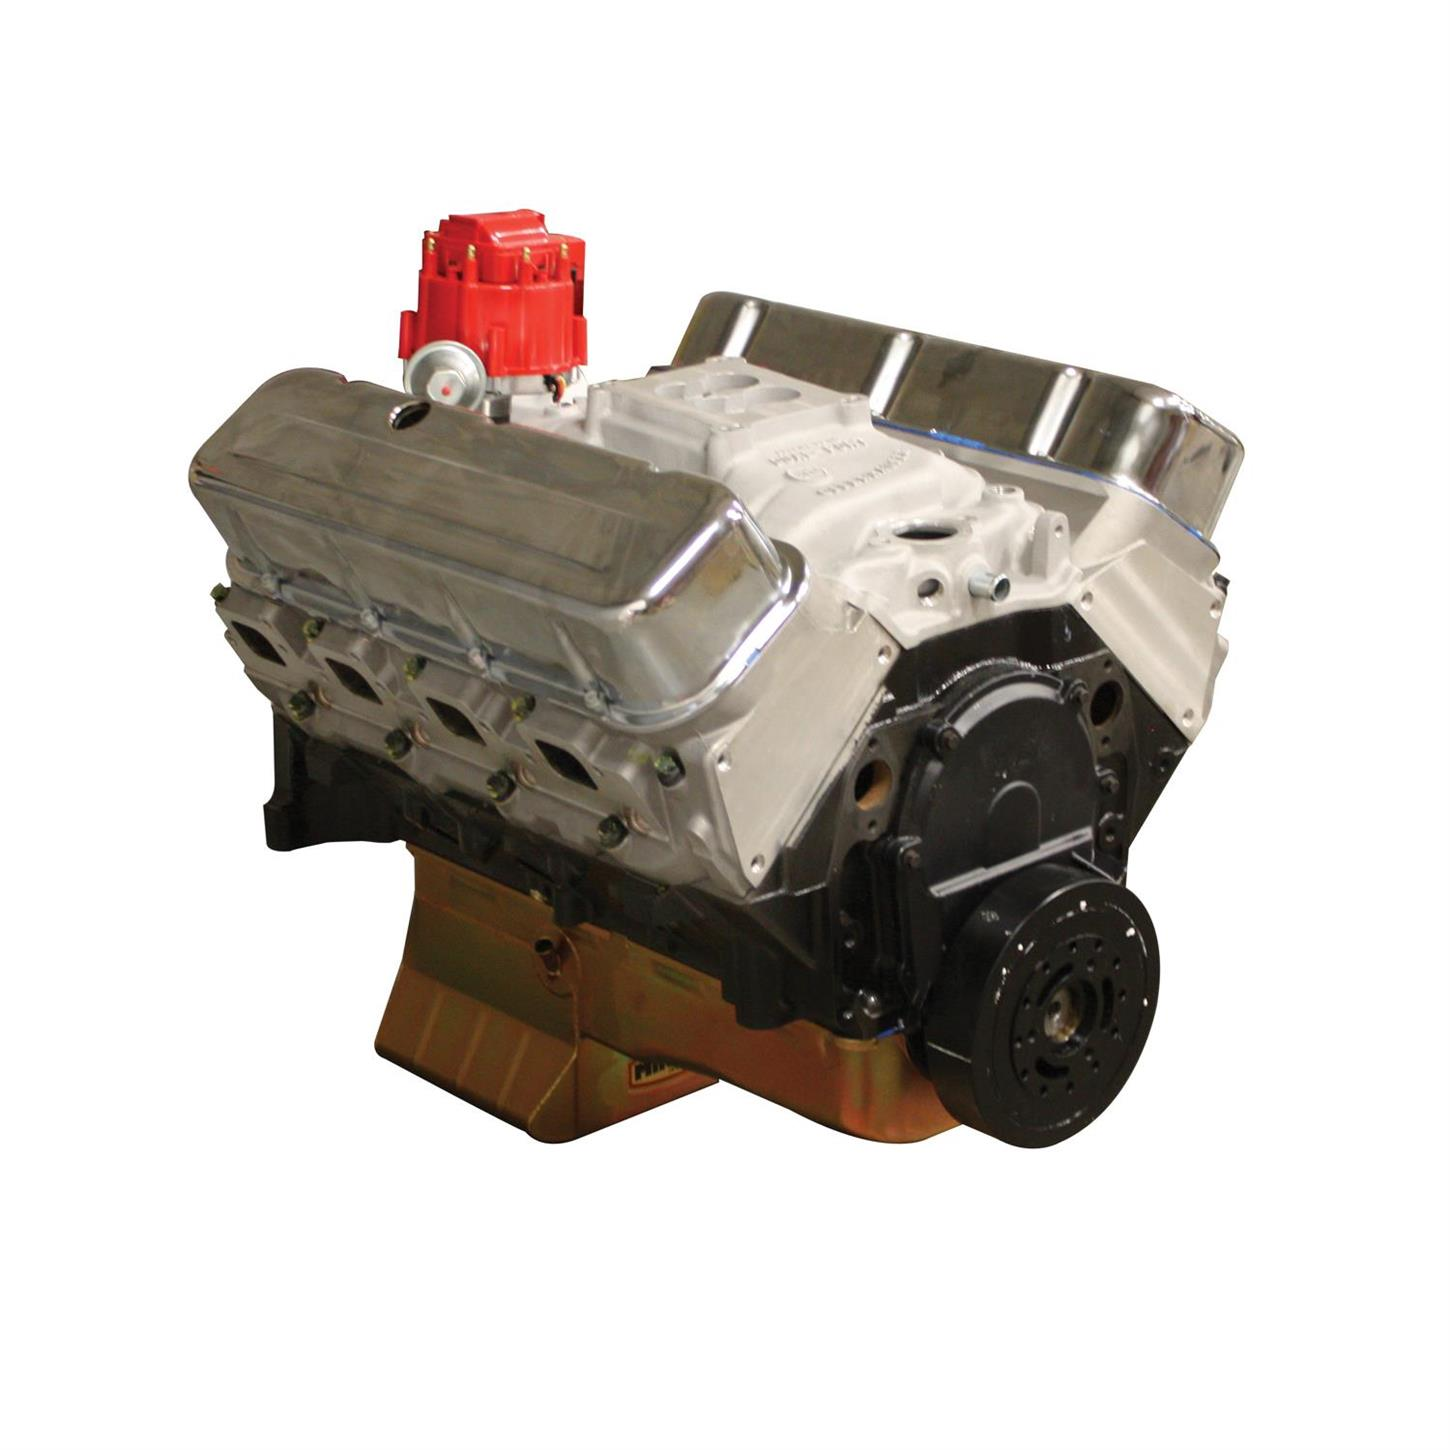 292 chevy engine kit home gt engine kits gt chevy 292 1963 1989 gt chevy - Blueprint Roller 496 B B Chevy Engine